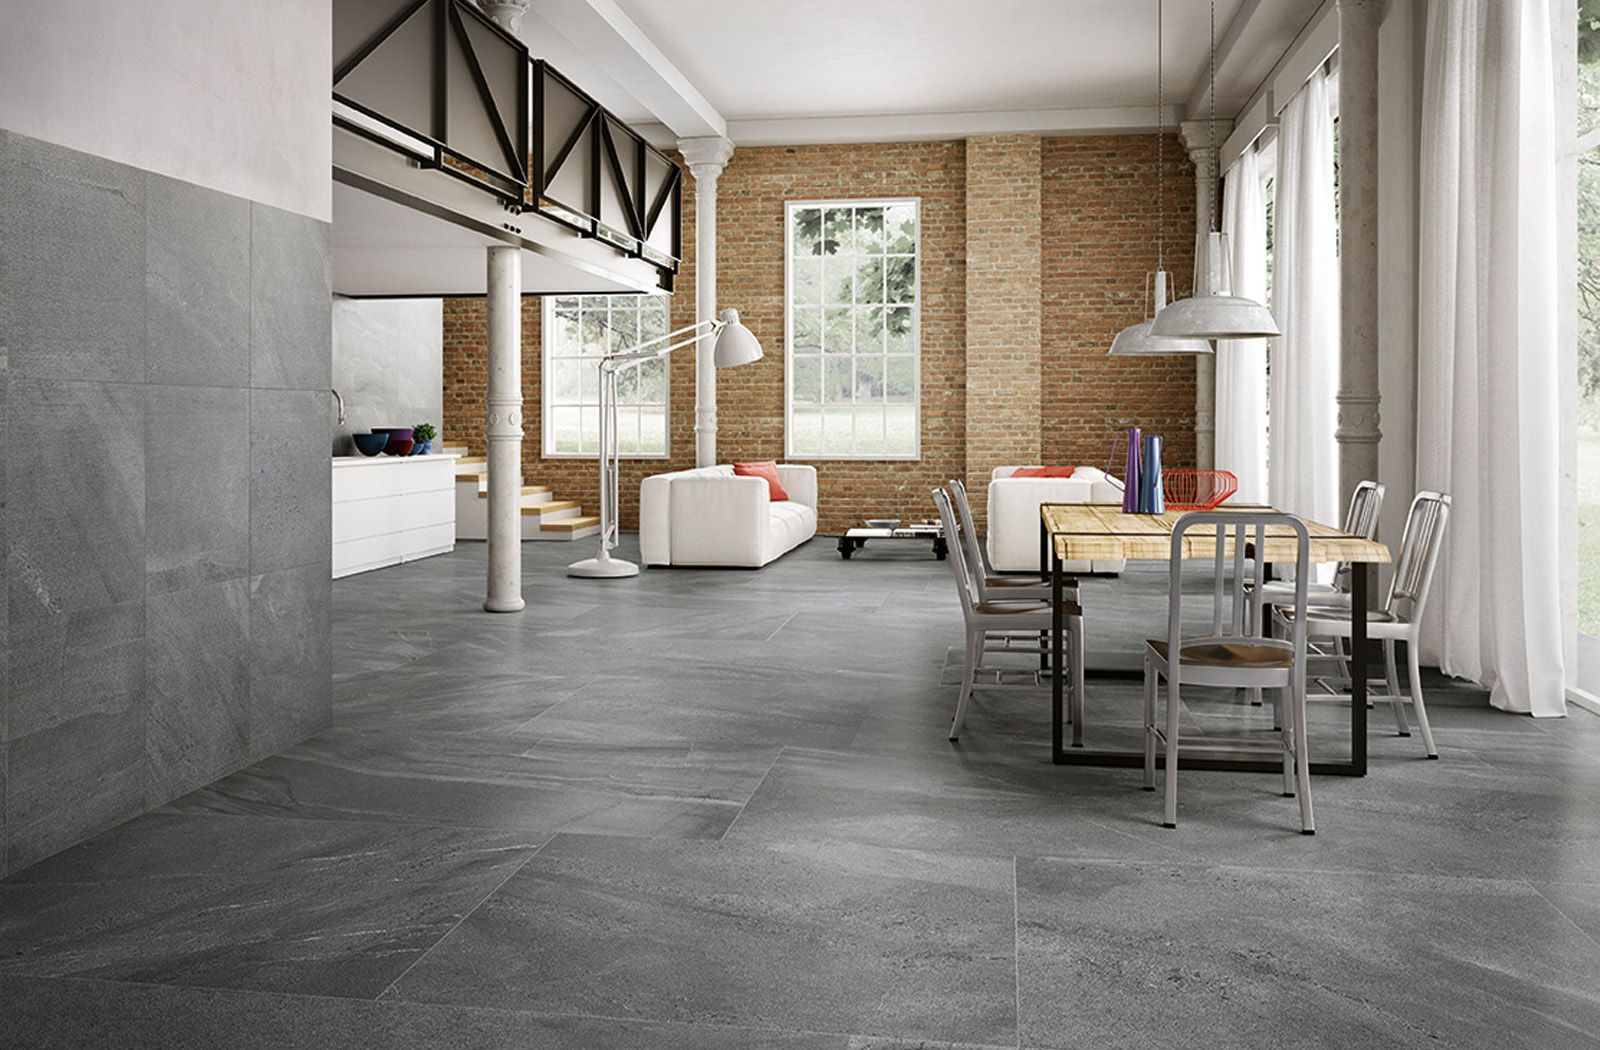 Modern industrial home interior with tiles from Ceramiche Caesar